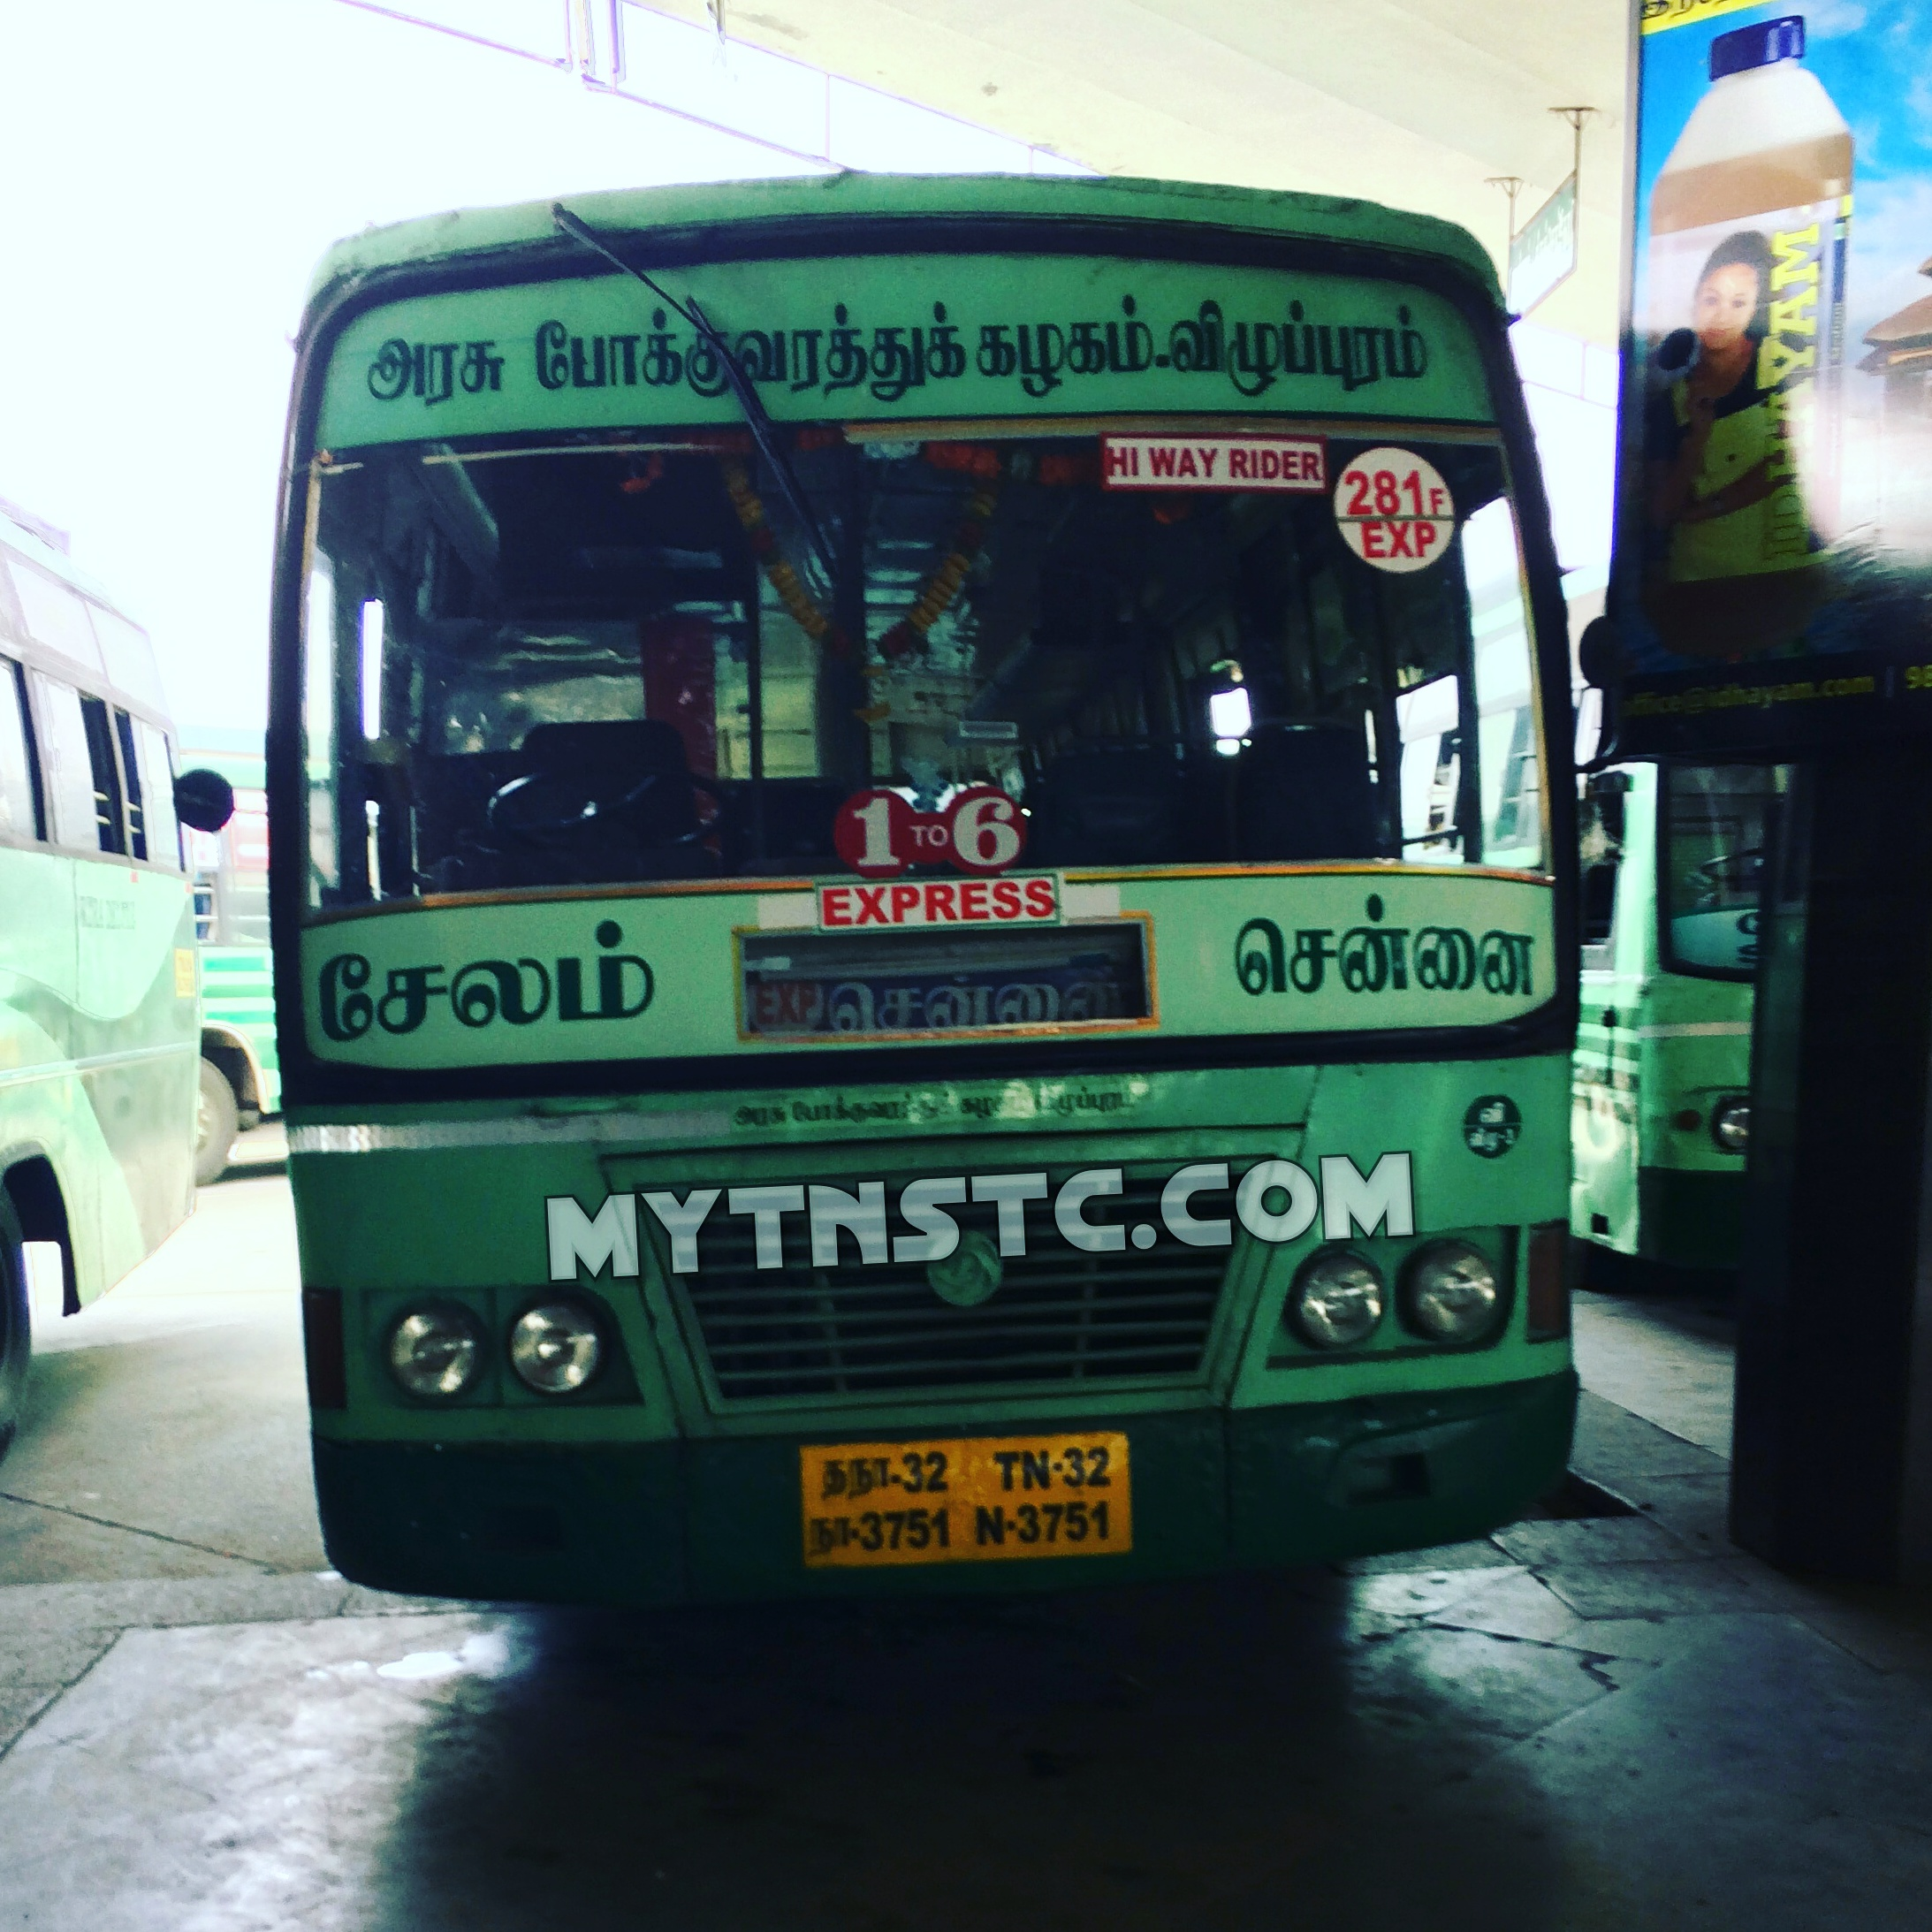 TNSTC Chennai to Salem TN 32 N 3751